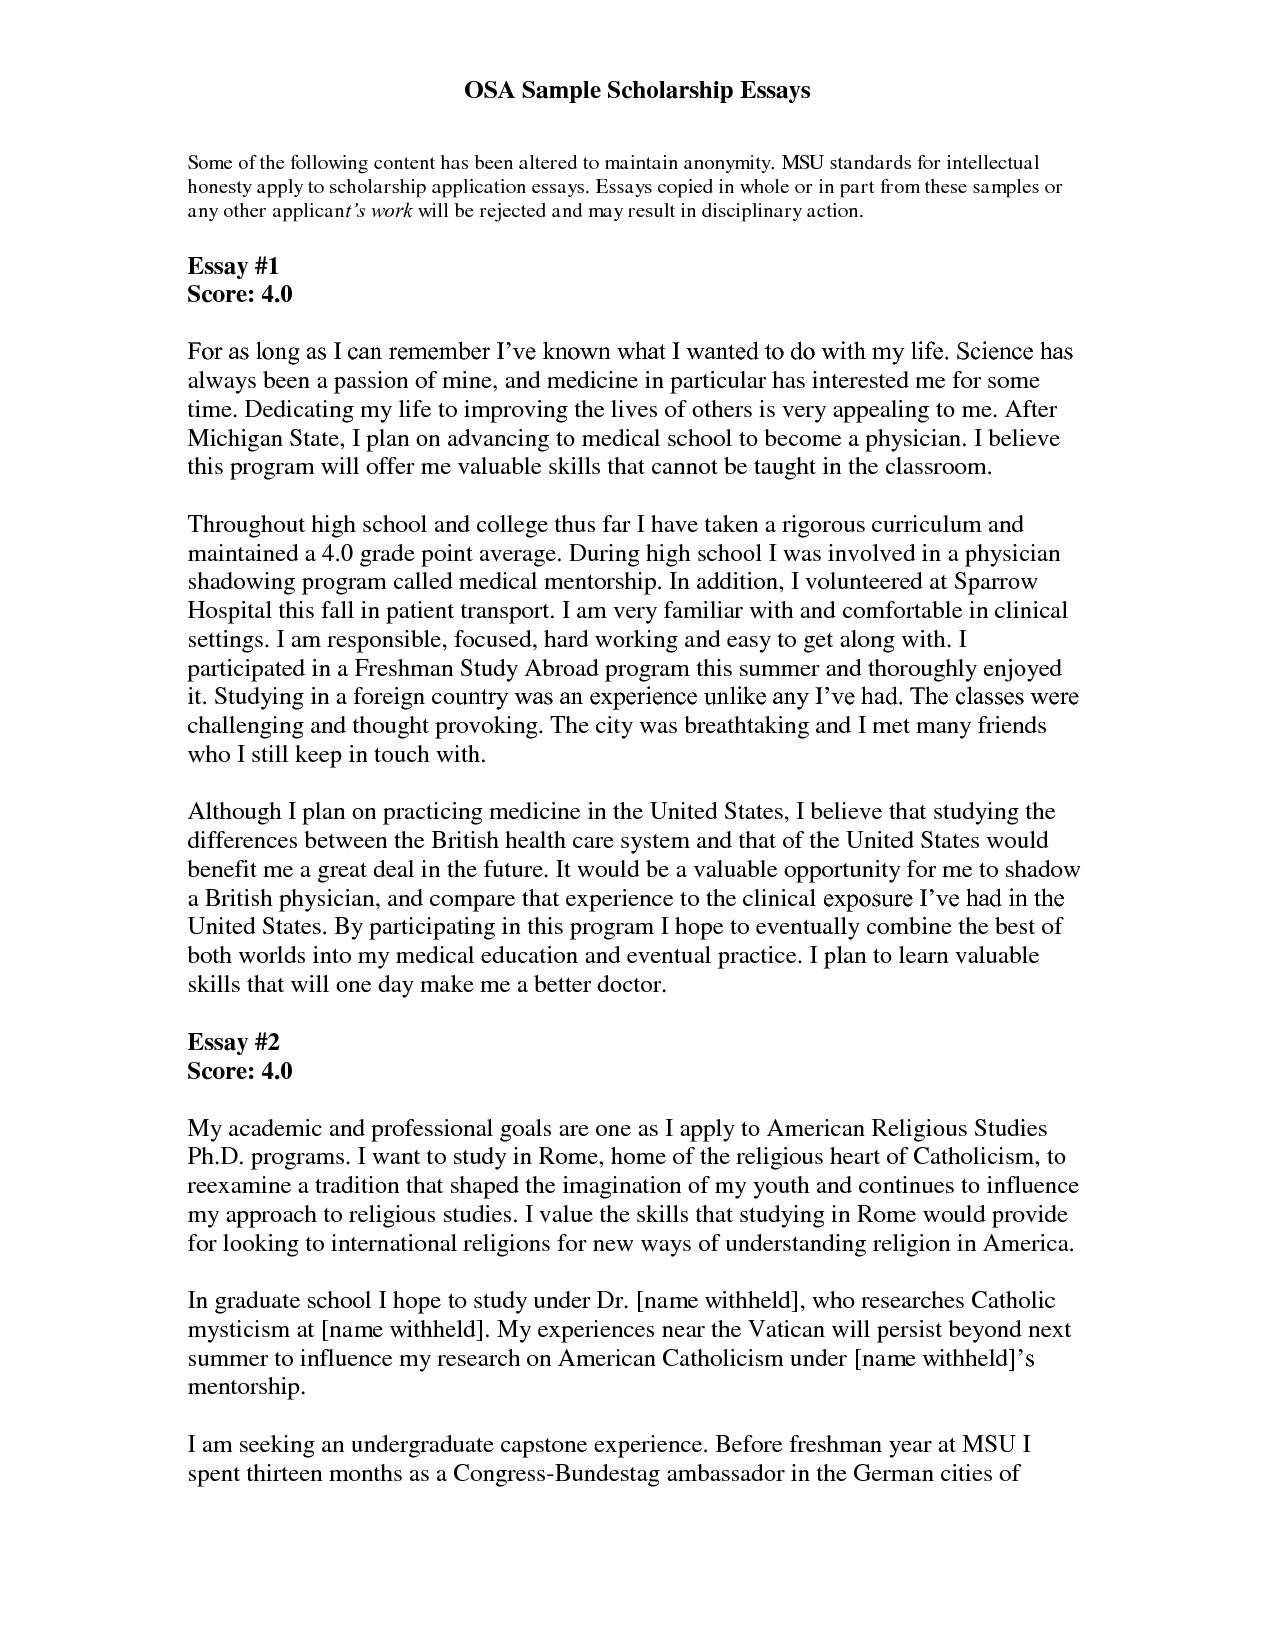 Interview Essay Paper Performances Do Topic You Should Not Appear How To Write Paper The  Interview In Jeans Plus A Tclothing So Do Not Product Your College Essay  By Doing This  In An Essay What Is A Thesis Statement also The Thesis Statement In A Research Essay Should Write My Paper For Me By Skilled Publisher Luckyessays  Milwaukee  My Hobby English Essay